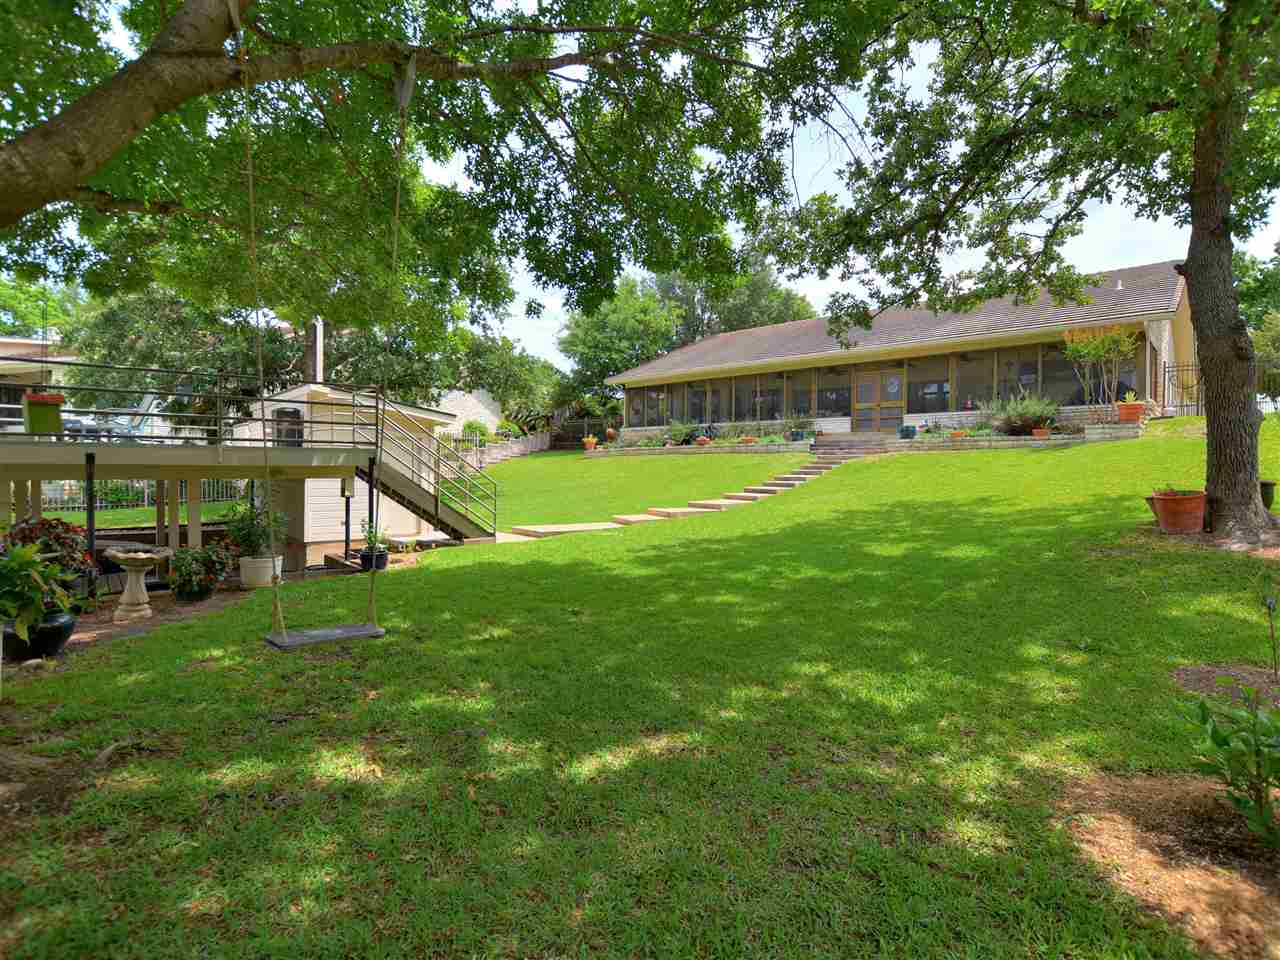 110 Boot Hill Horseshoe Bay Real Estate Home Listings - RE/MAX Horseshoe Bay Resort Sales, Co. Lake LBJ Real Estate